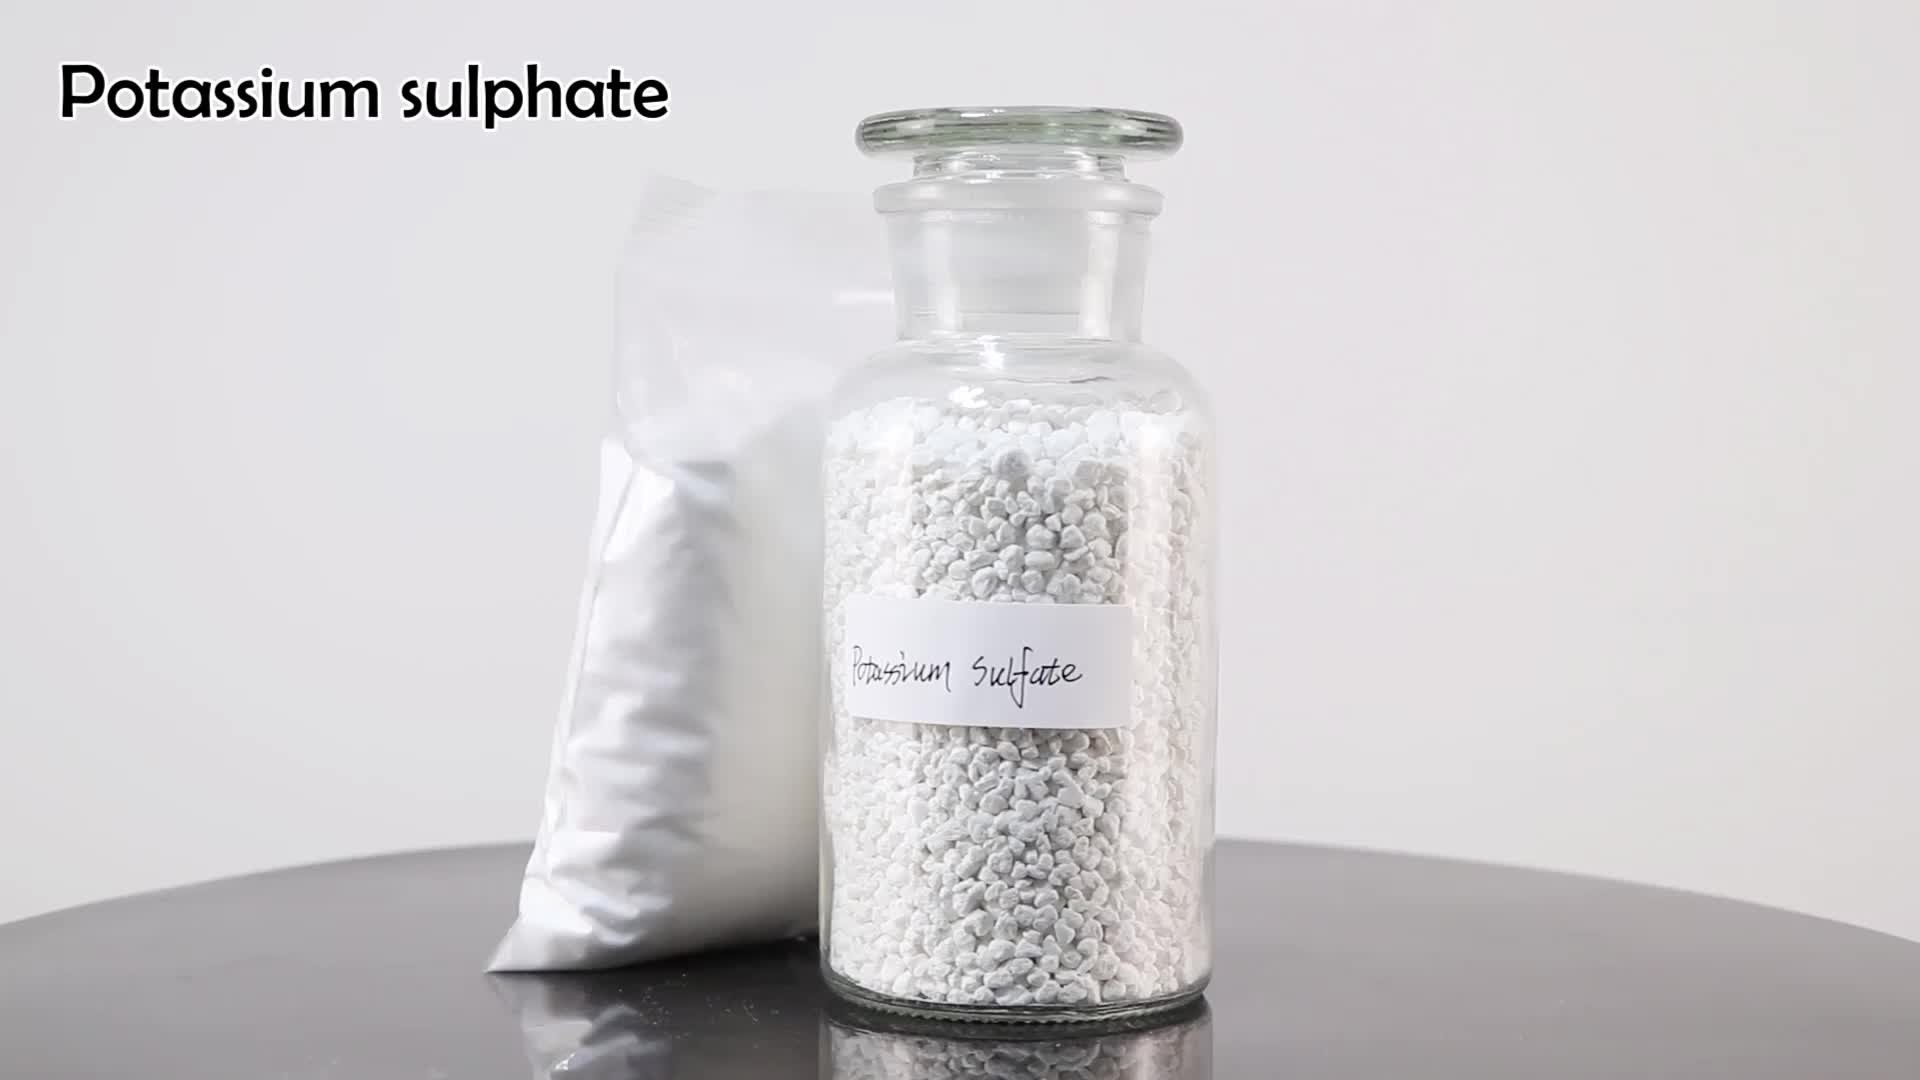 white granules fertilizer potassium sulfate